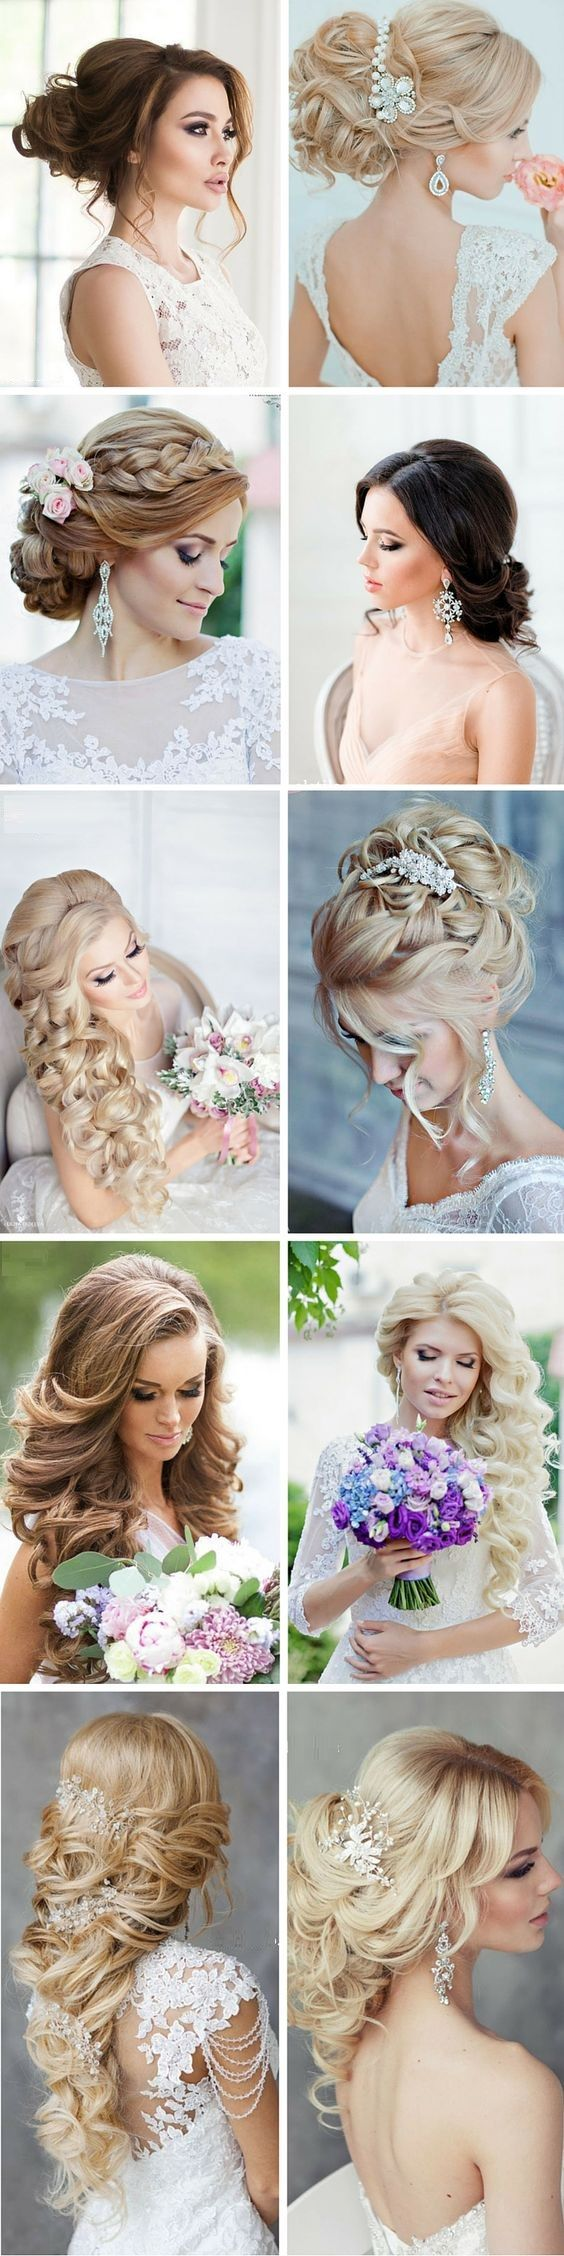 Great wedding day hairstyles to get inspired by שער hair